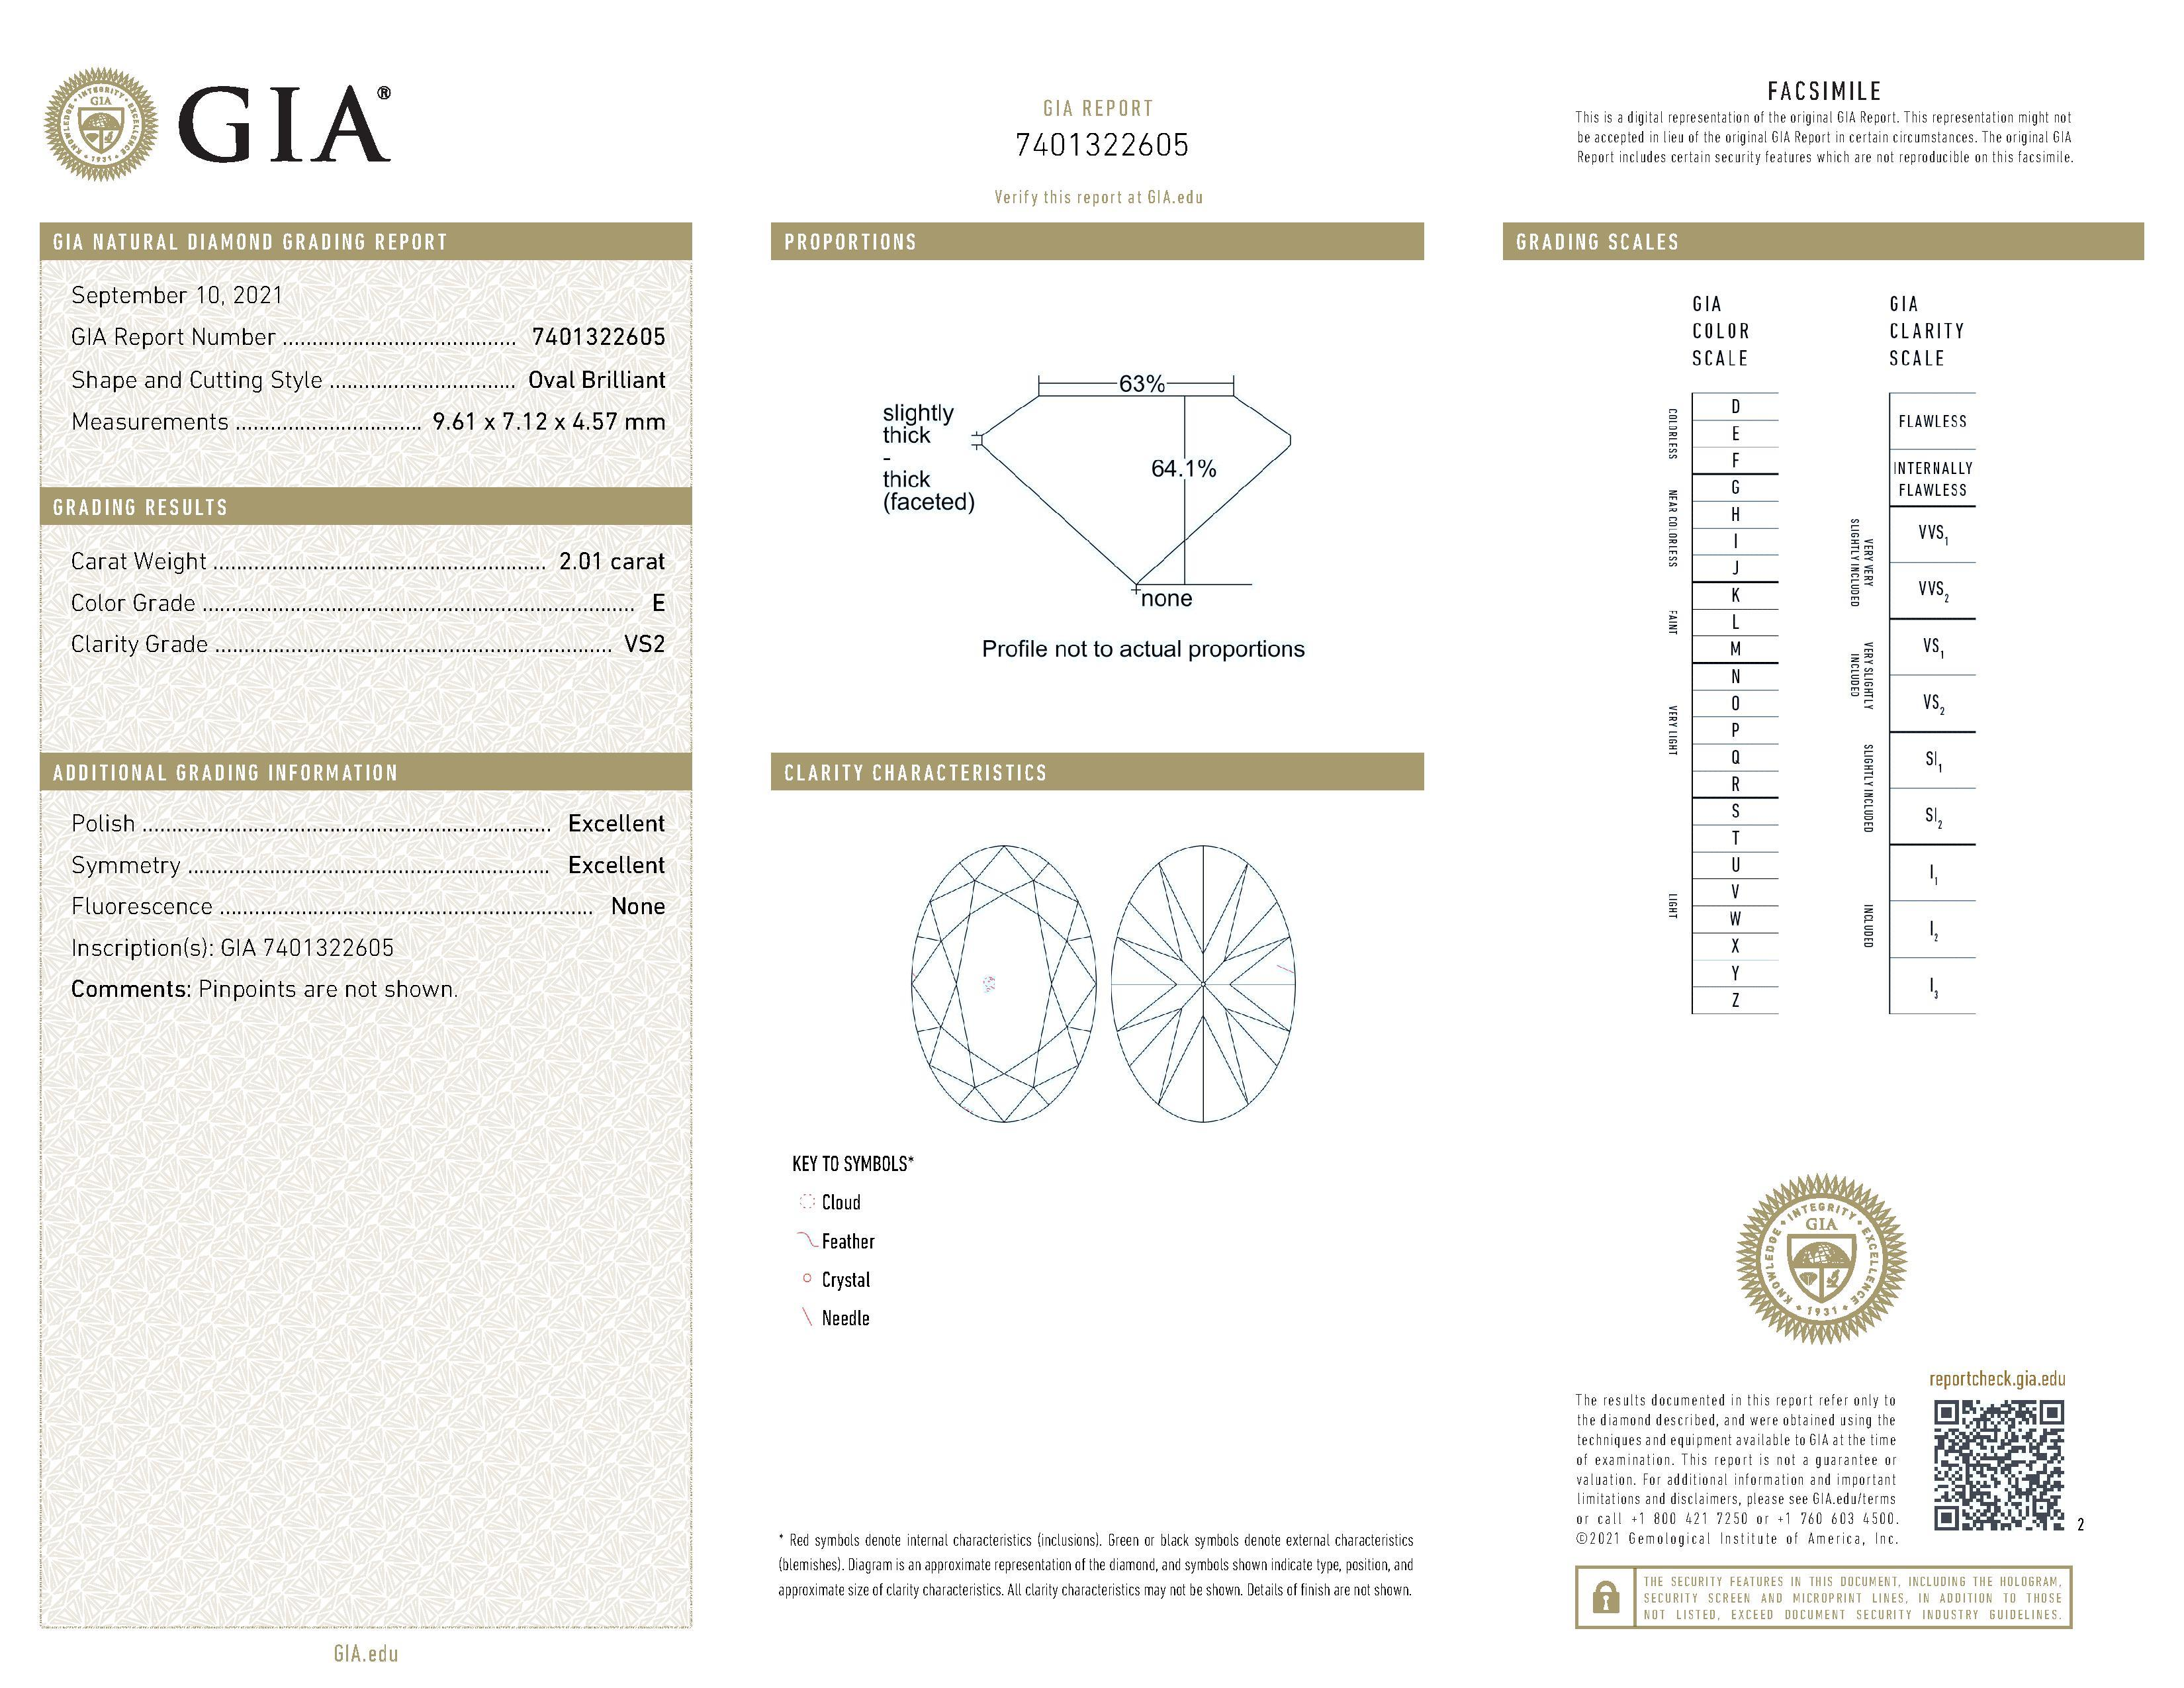 This is a 2.01 carat oval shape, E color, VS2 clarity natural diamond accompanied by a GIA grading report.